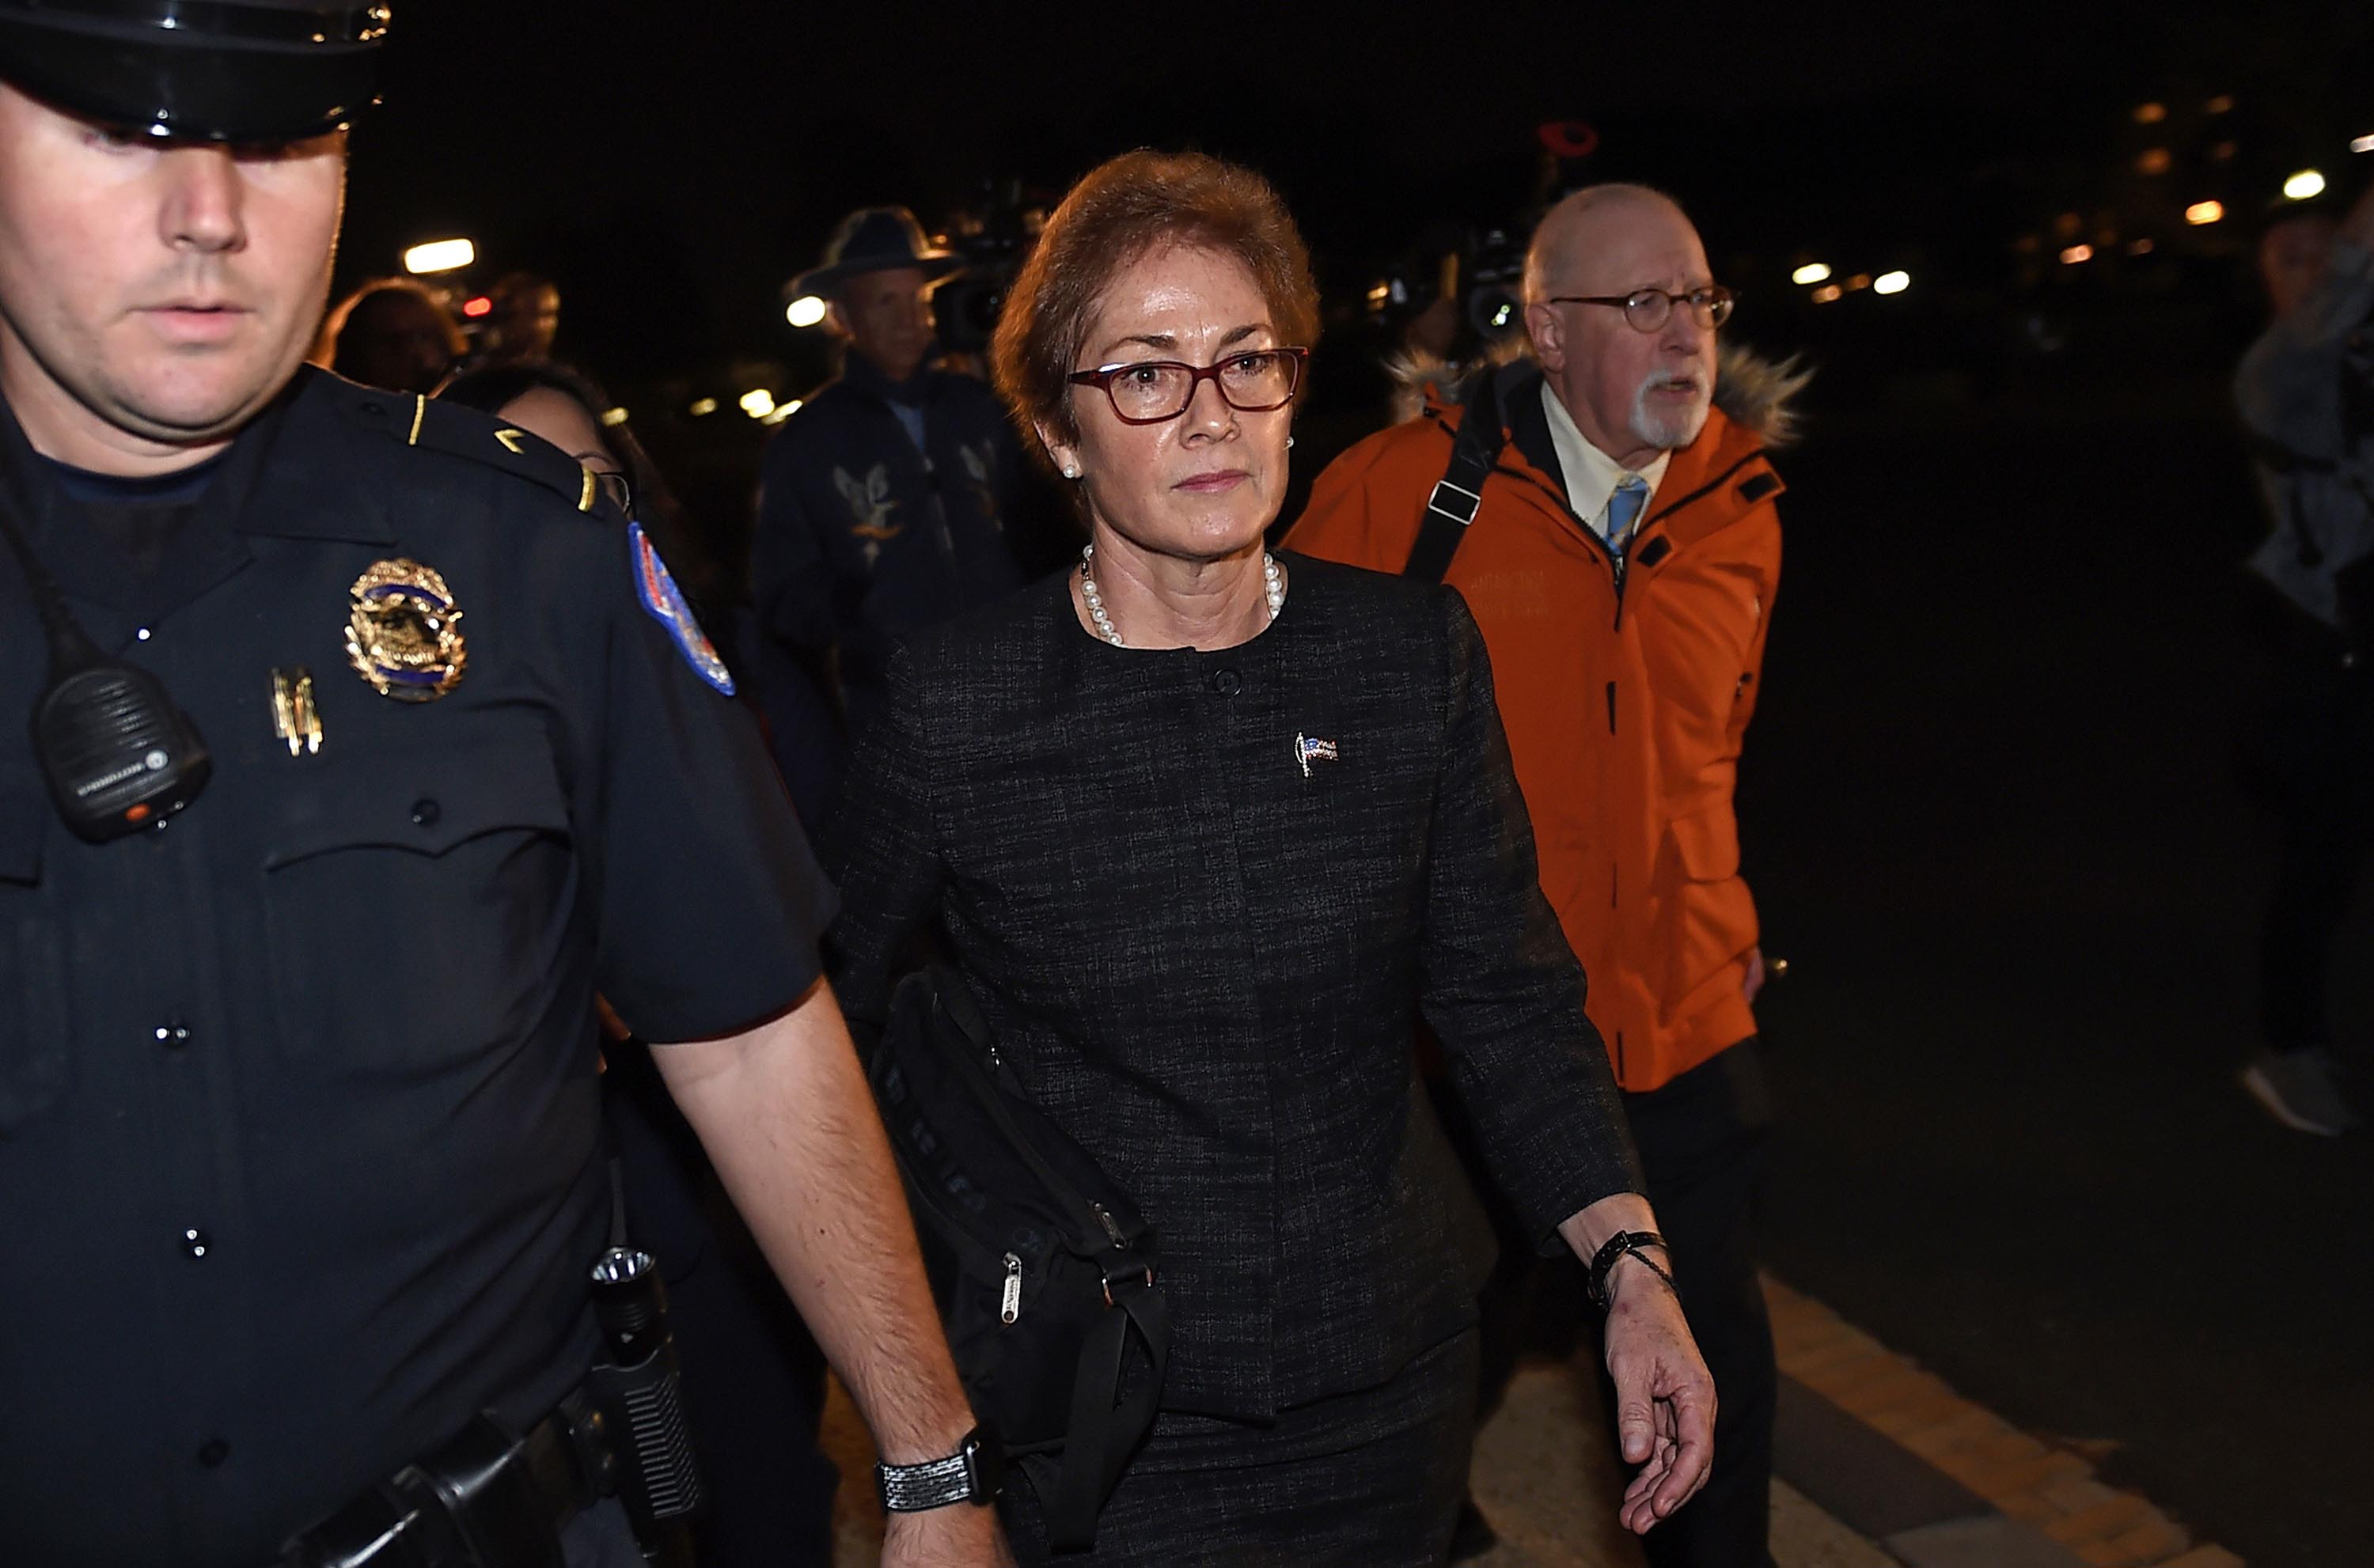 Marie Yovanovitch (center) flanked by lawyers, aides and Capitol police, leaves the US Capitol, October 11, after testifying behind closed doors.